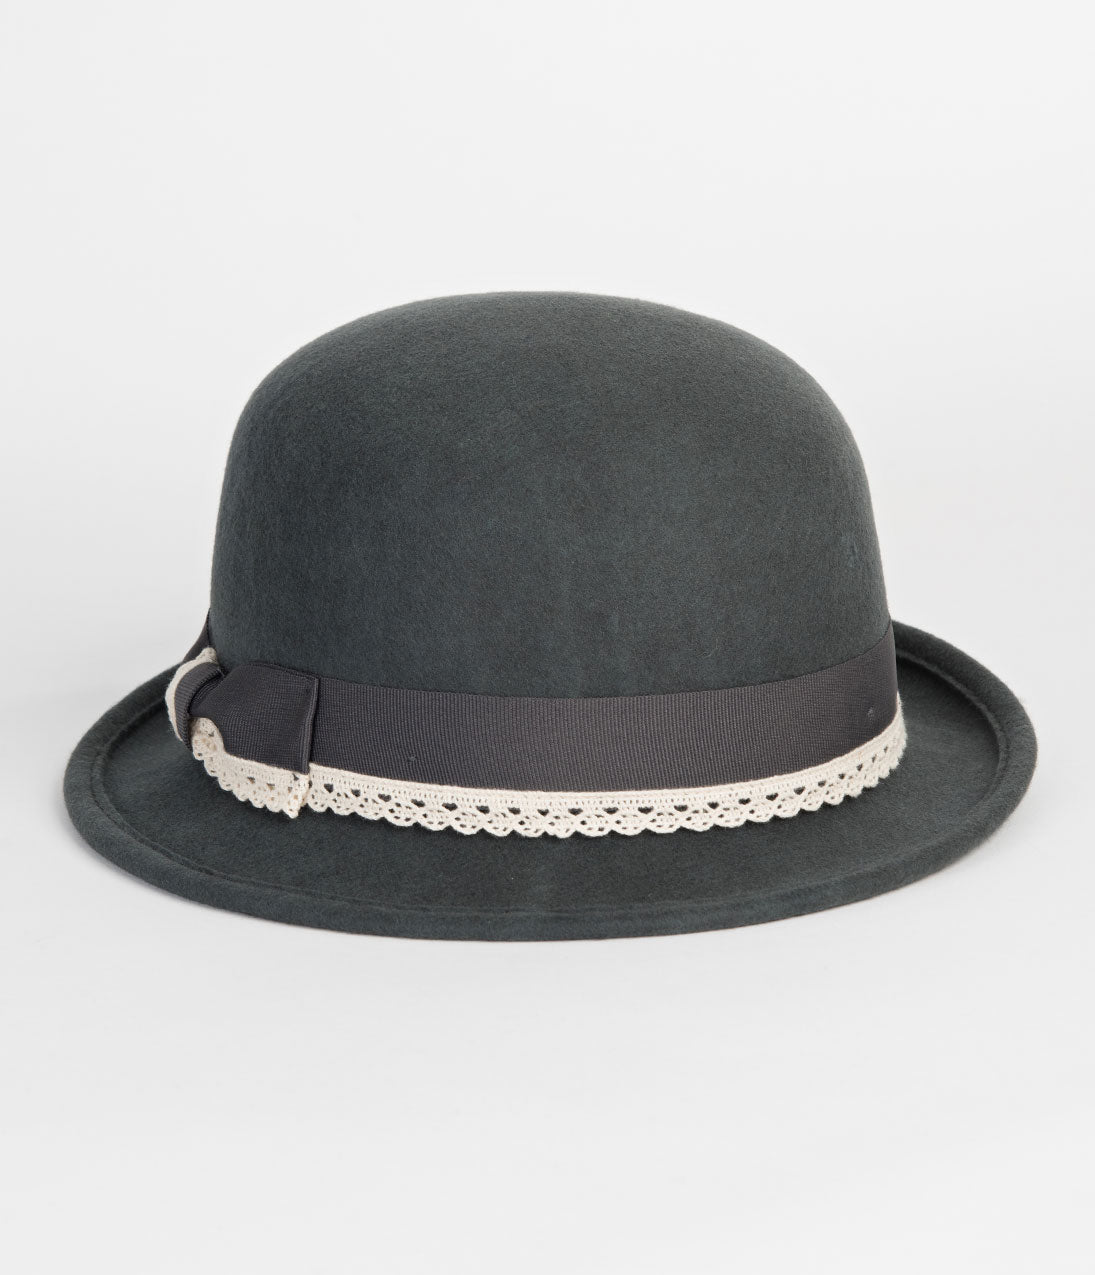 1930s Style Hats | 30s Ladies Hats Grey Wool  Ivory Lace Trim Bowler Hat $34.00 AT vintagedancer.com